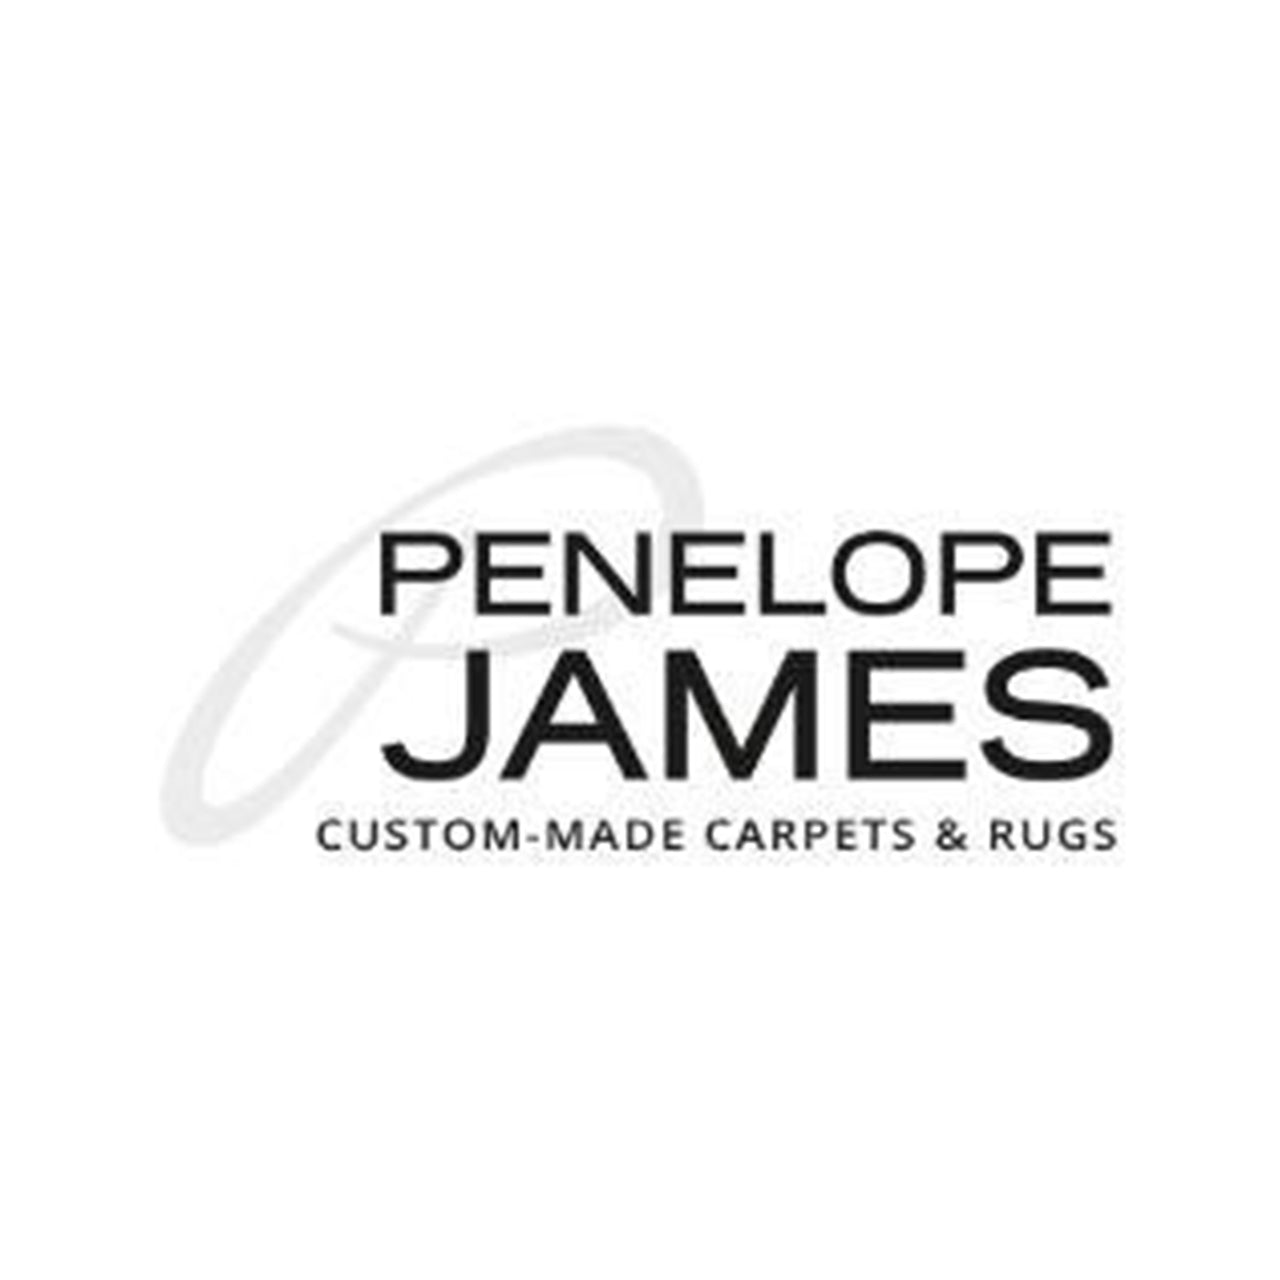 Penelope James Carpets